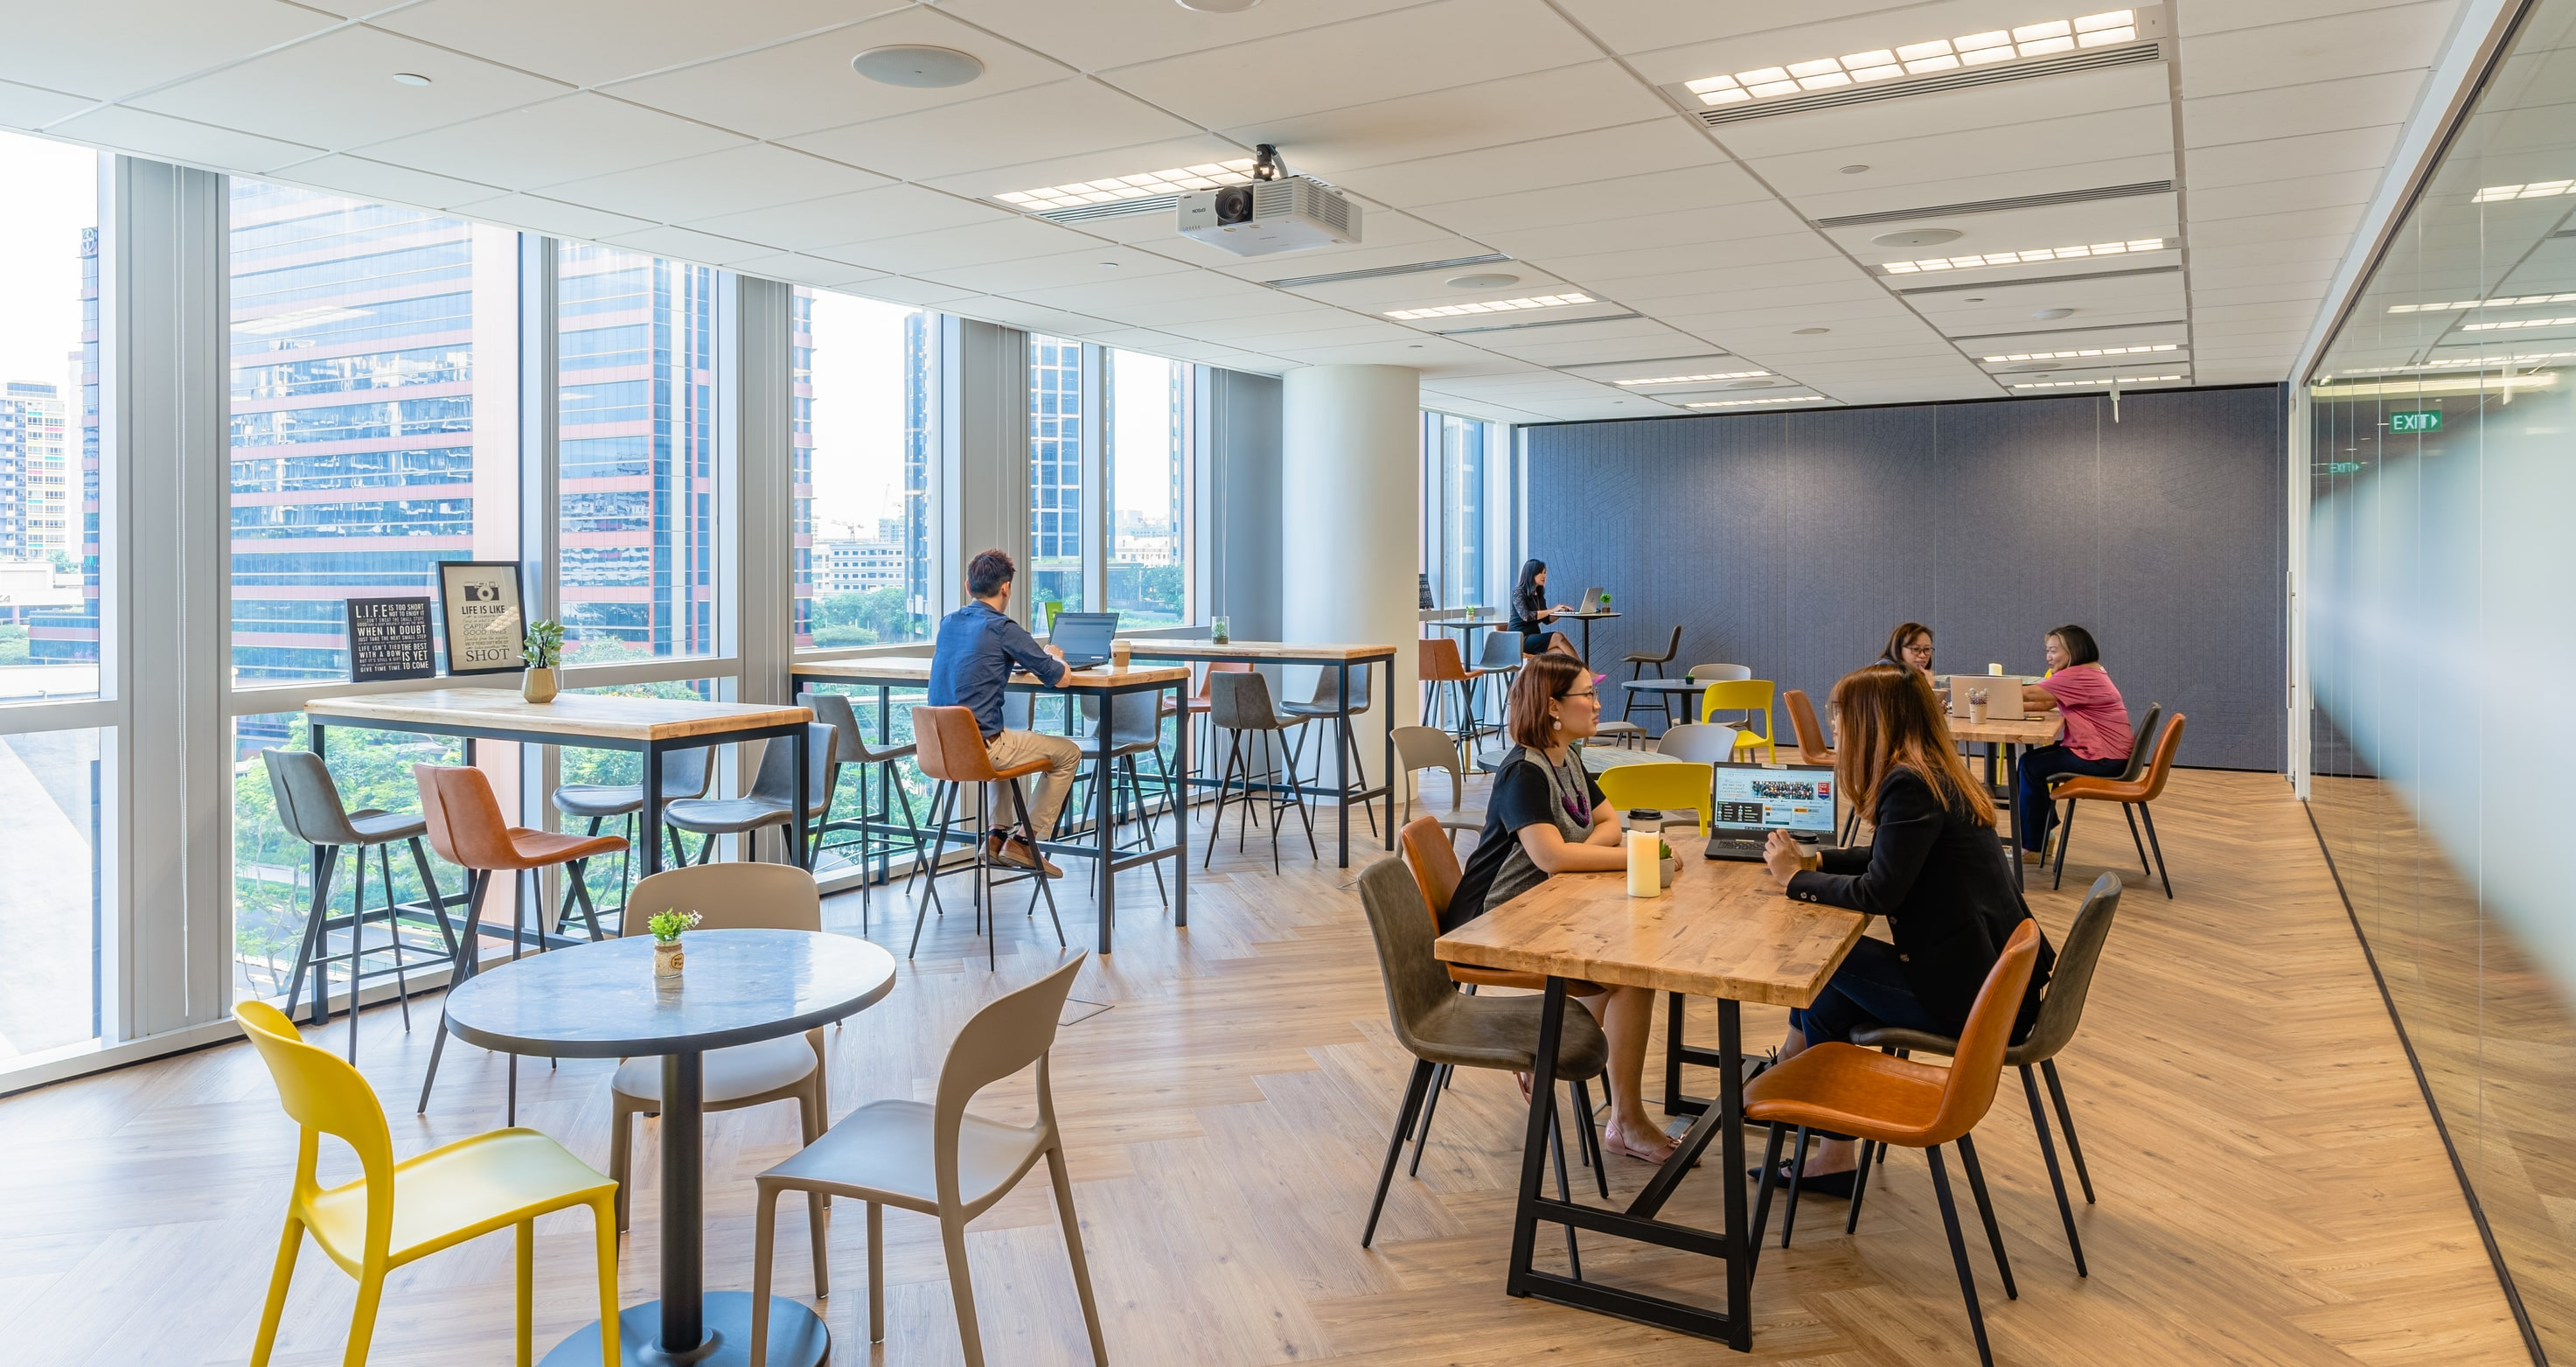 The office cafeteria at RHTLaw Asia doubles up as a workspace too